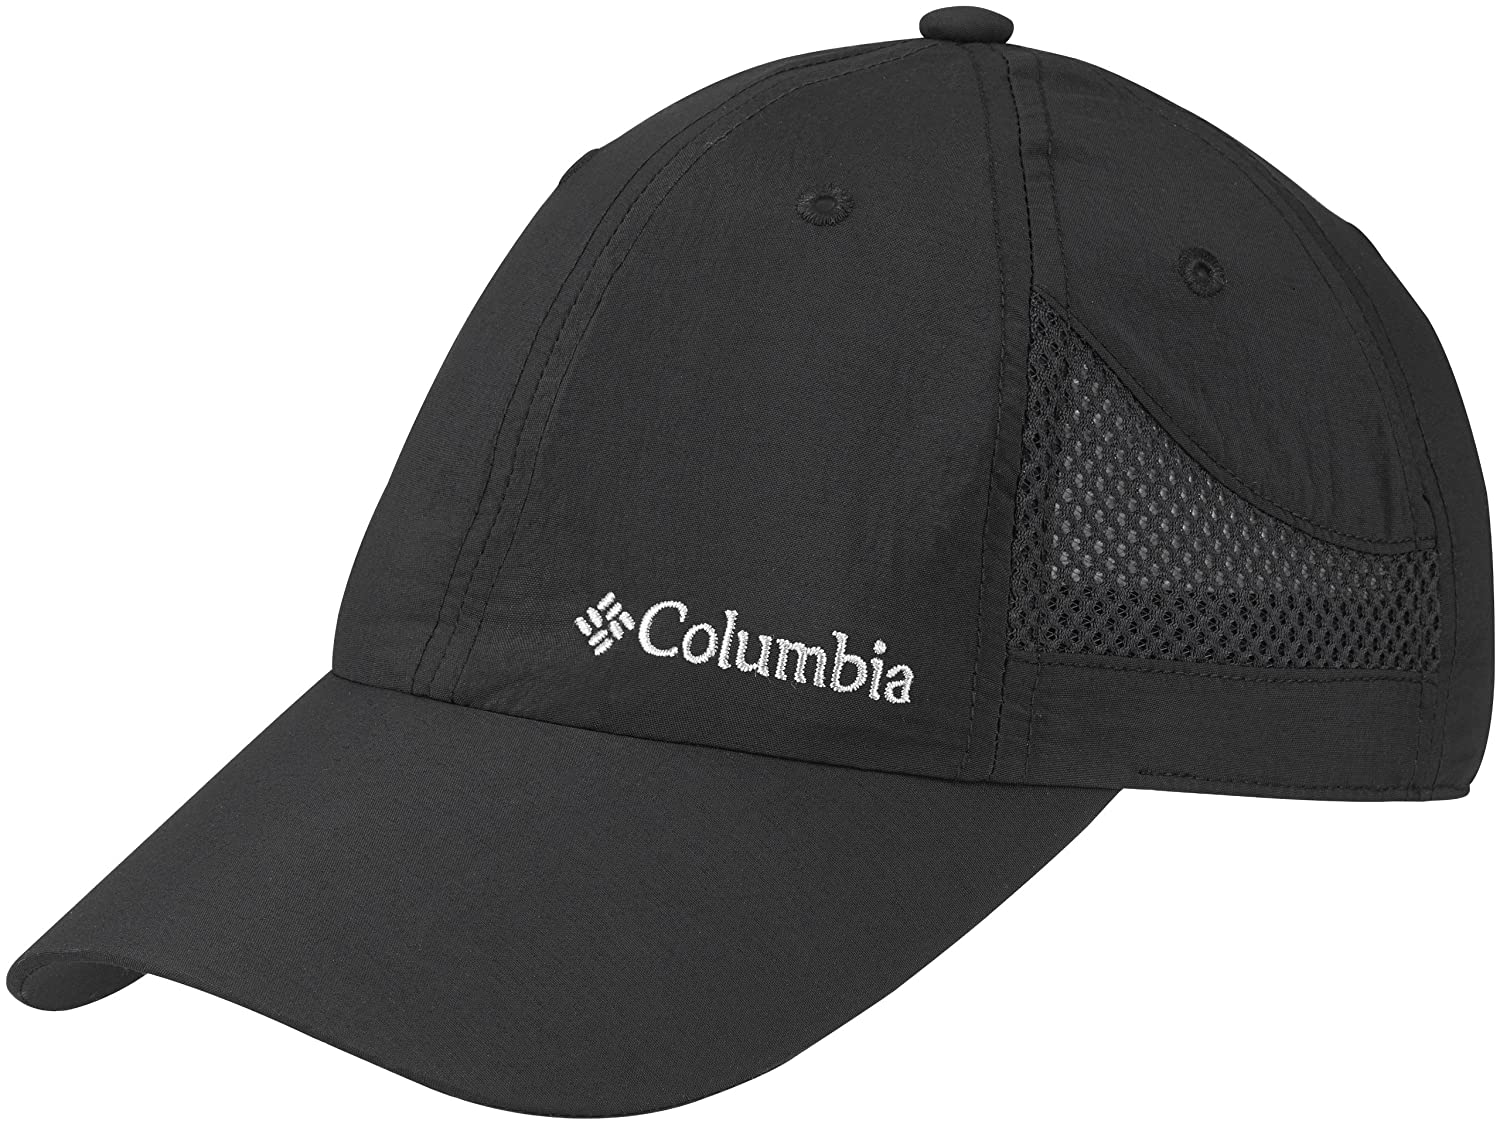 Columbia Kappe Tech Shade Hat